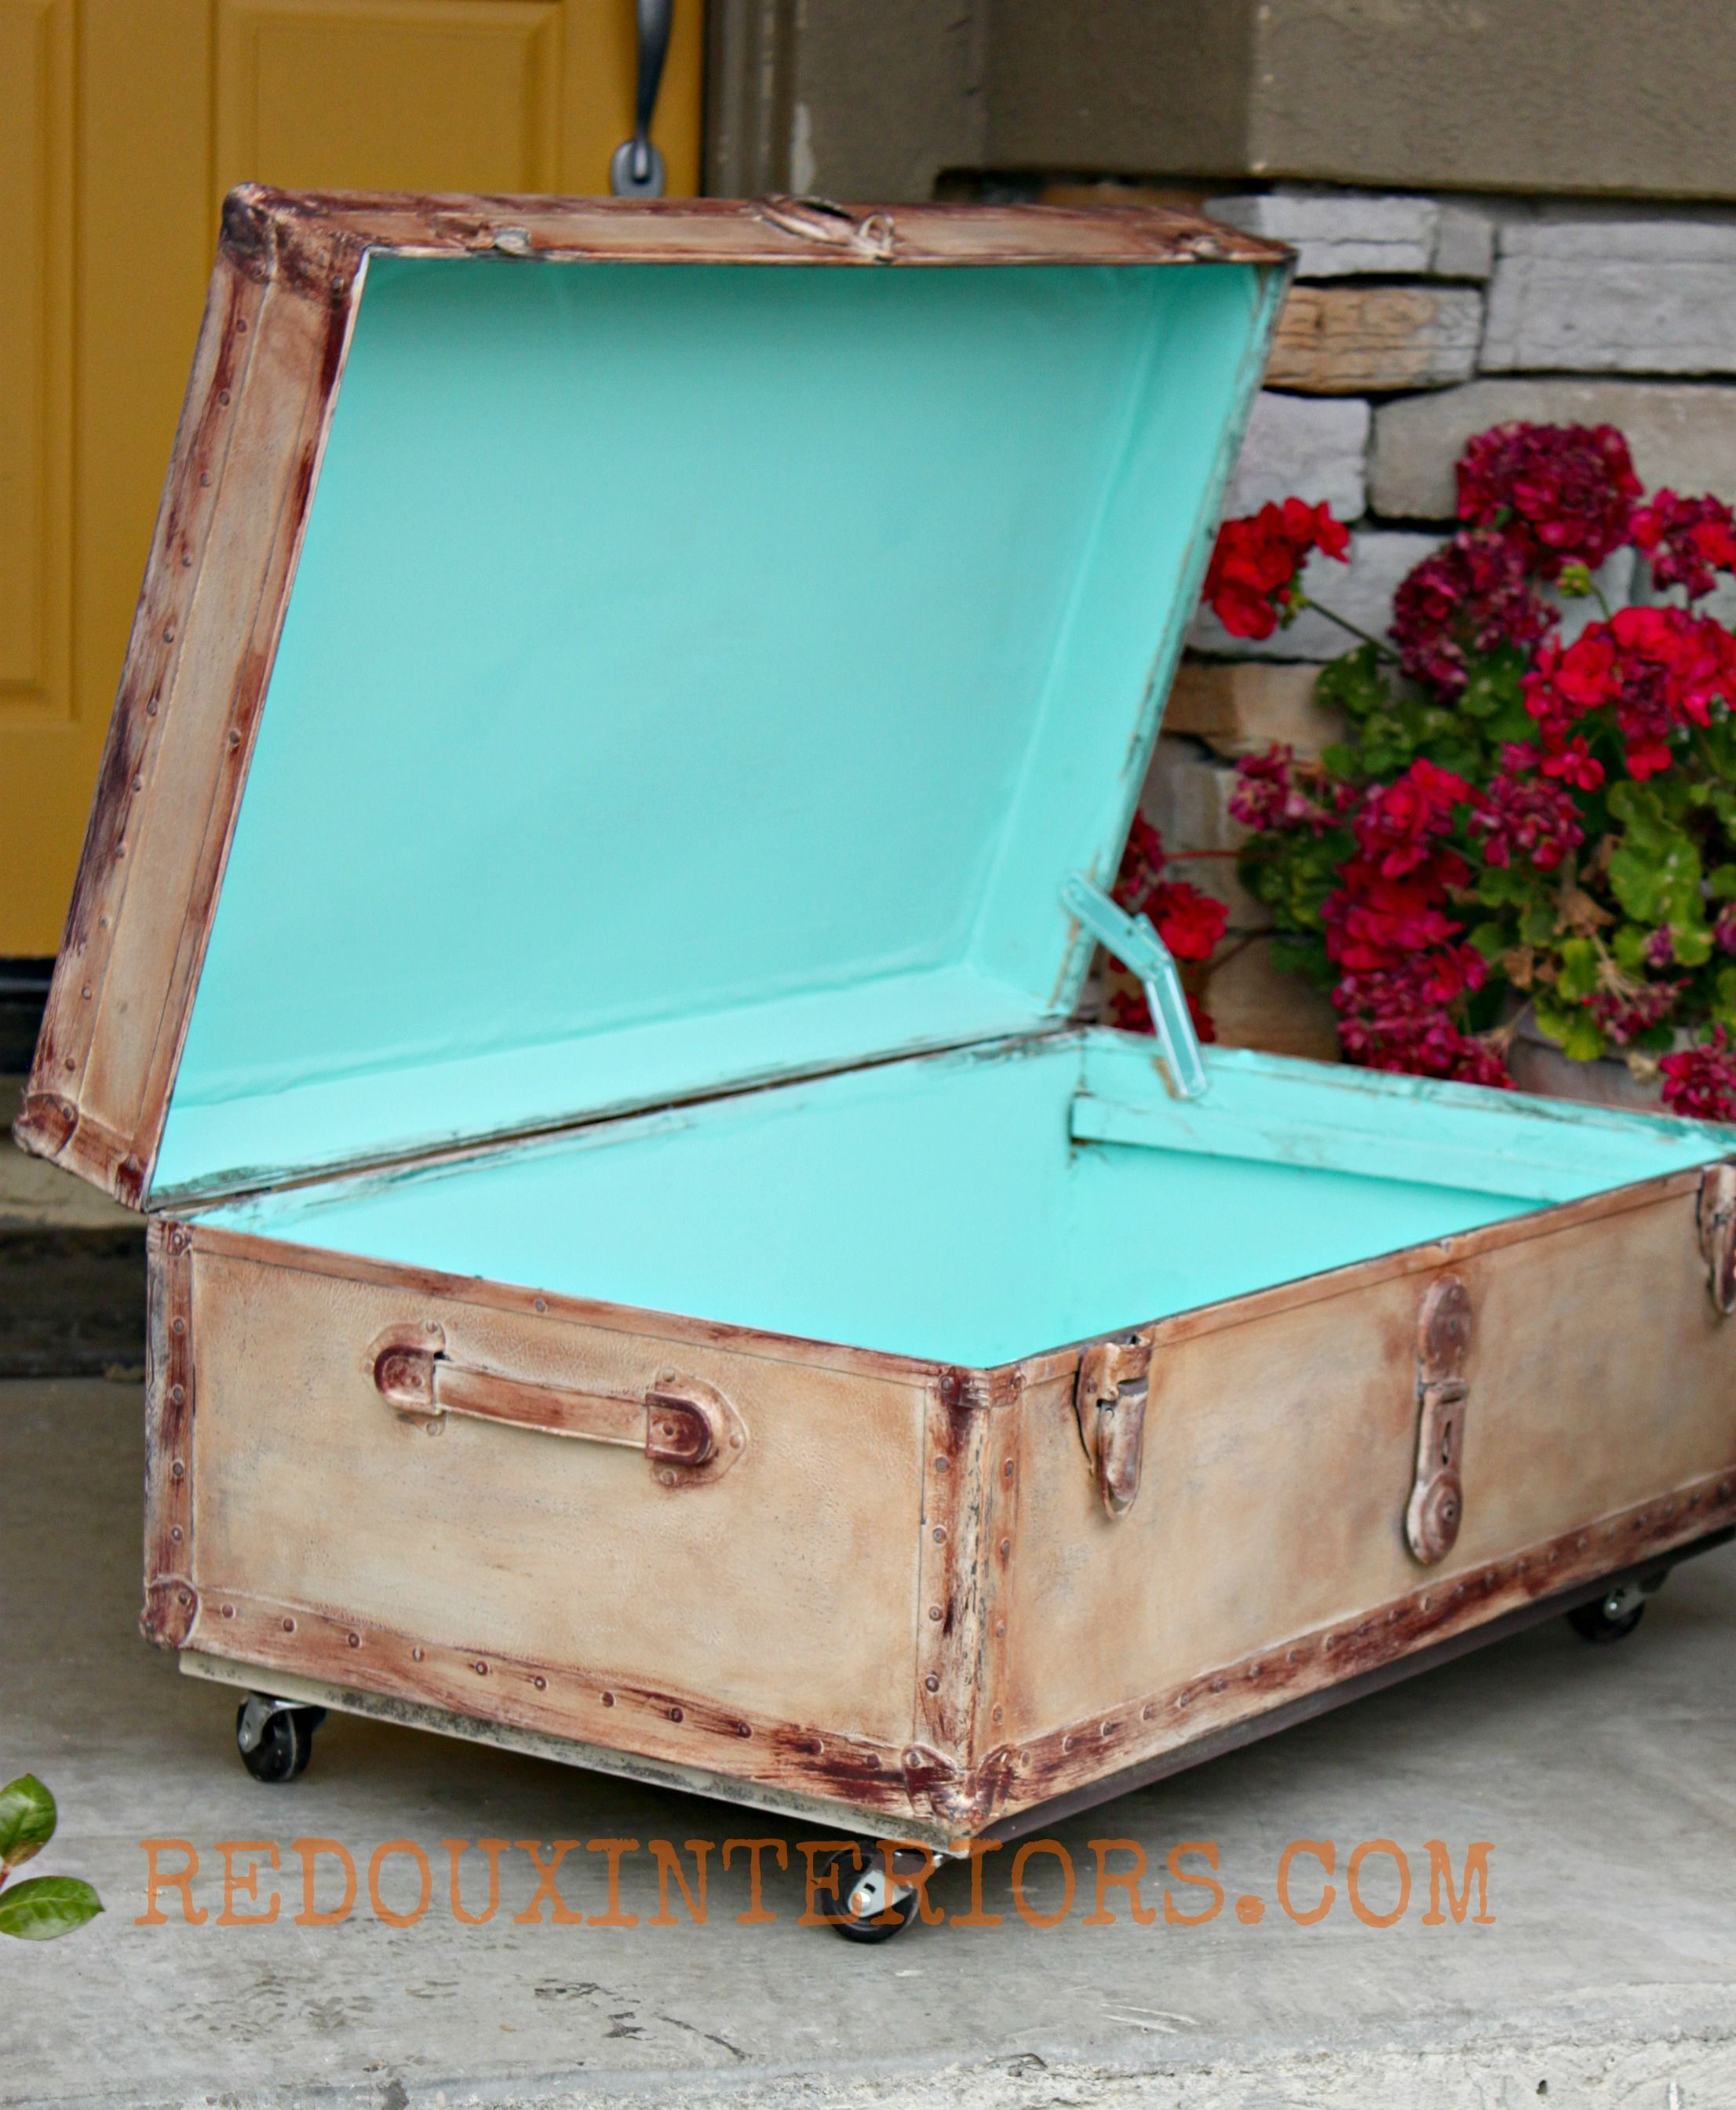 Info's : Trunk Makeover to Aged perfection. CeCe Caldwells Myrtle Beach Sand, Santa Fe Turquoise and Aging Cream.  Modern Masters Coffee Bean and Tobacco Brown Colorant.  REDOUXINTERIORS.COM FACEBOOK: REDOUX